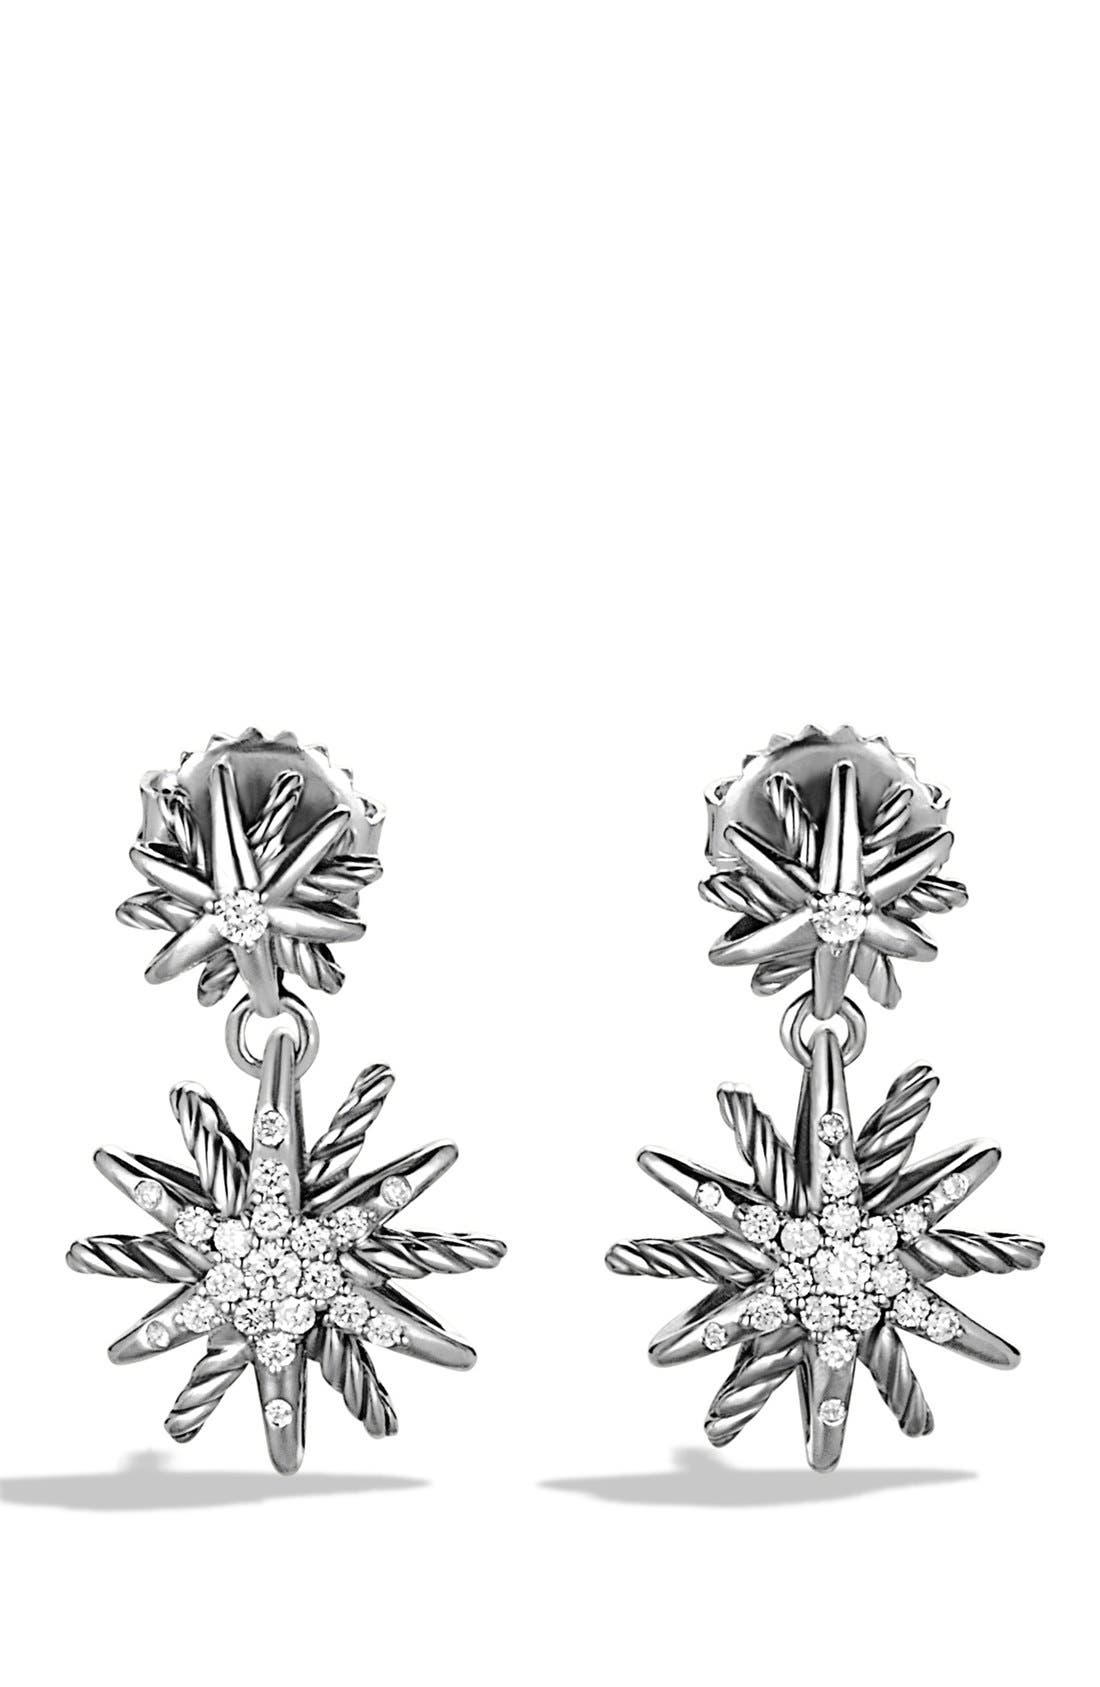 David Yurman 'Starburst' Double-Drop Earrings with Diamonds